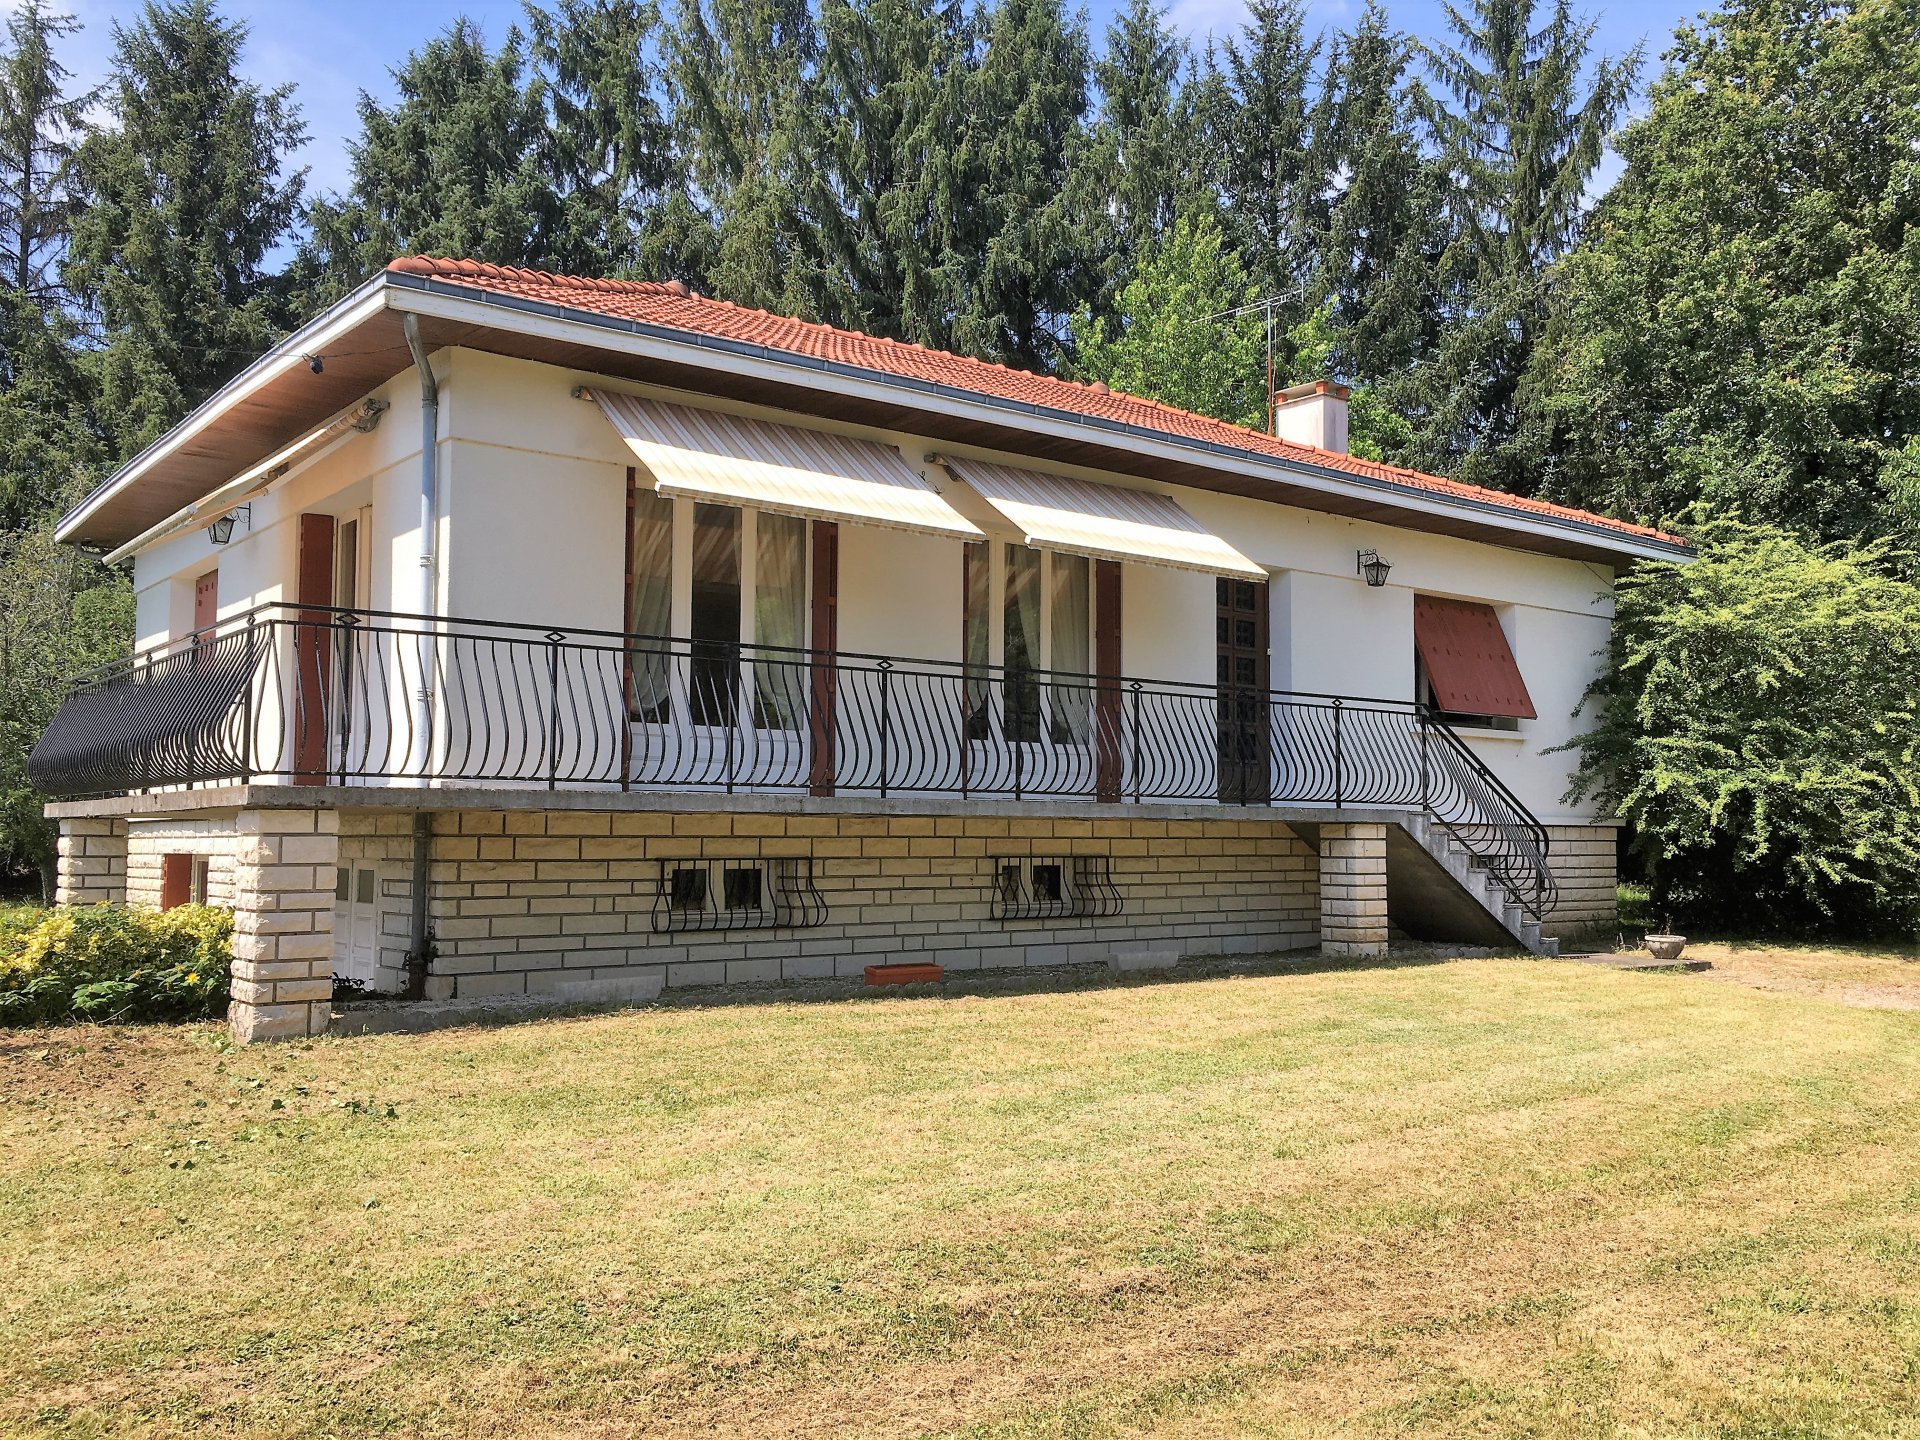 1970's House with basement, 92 m² living space, for sale in north Dordogne